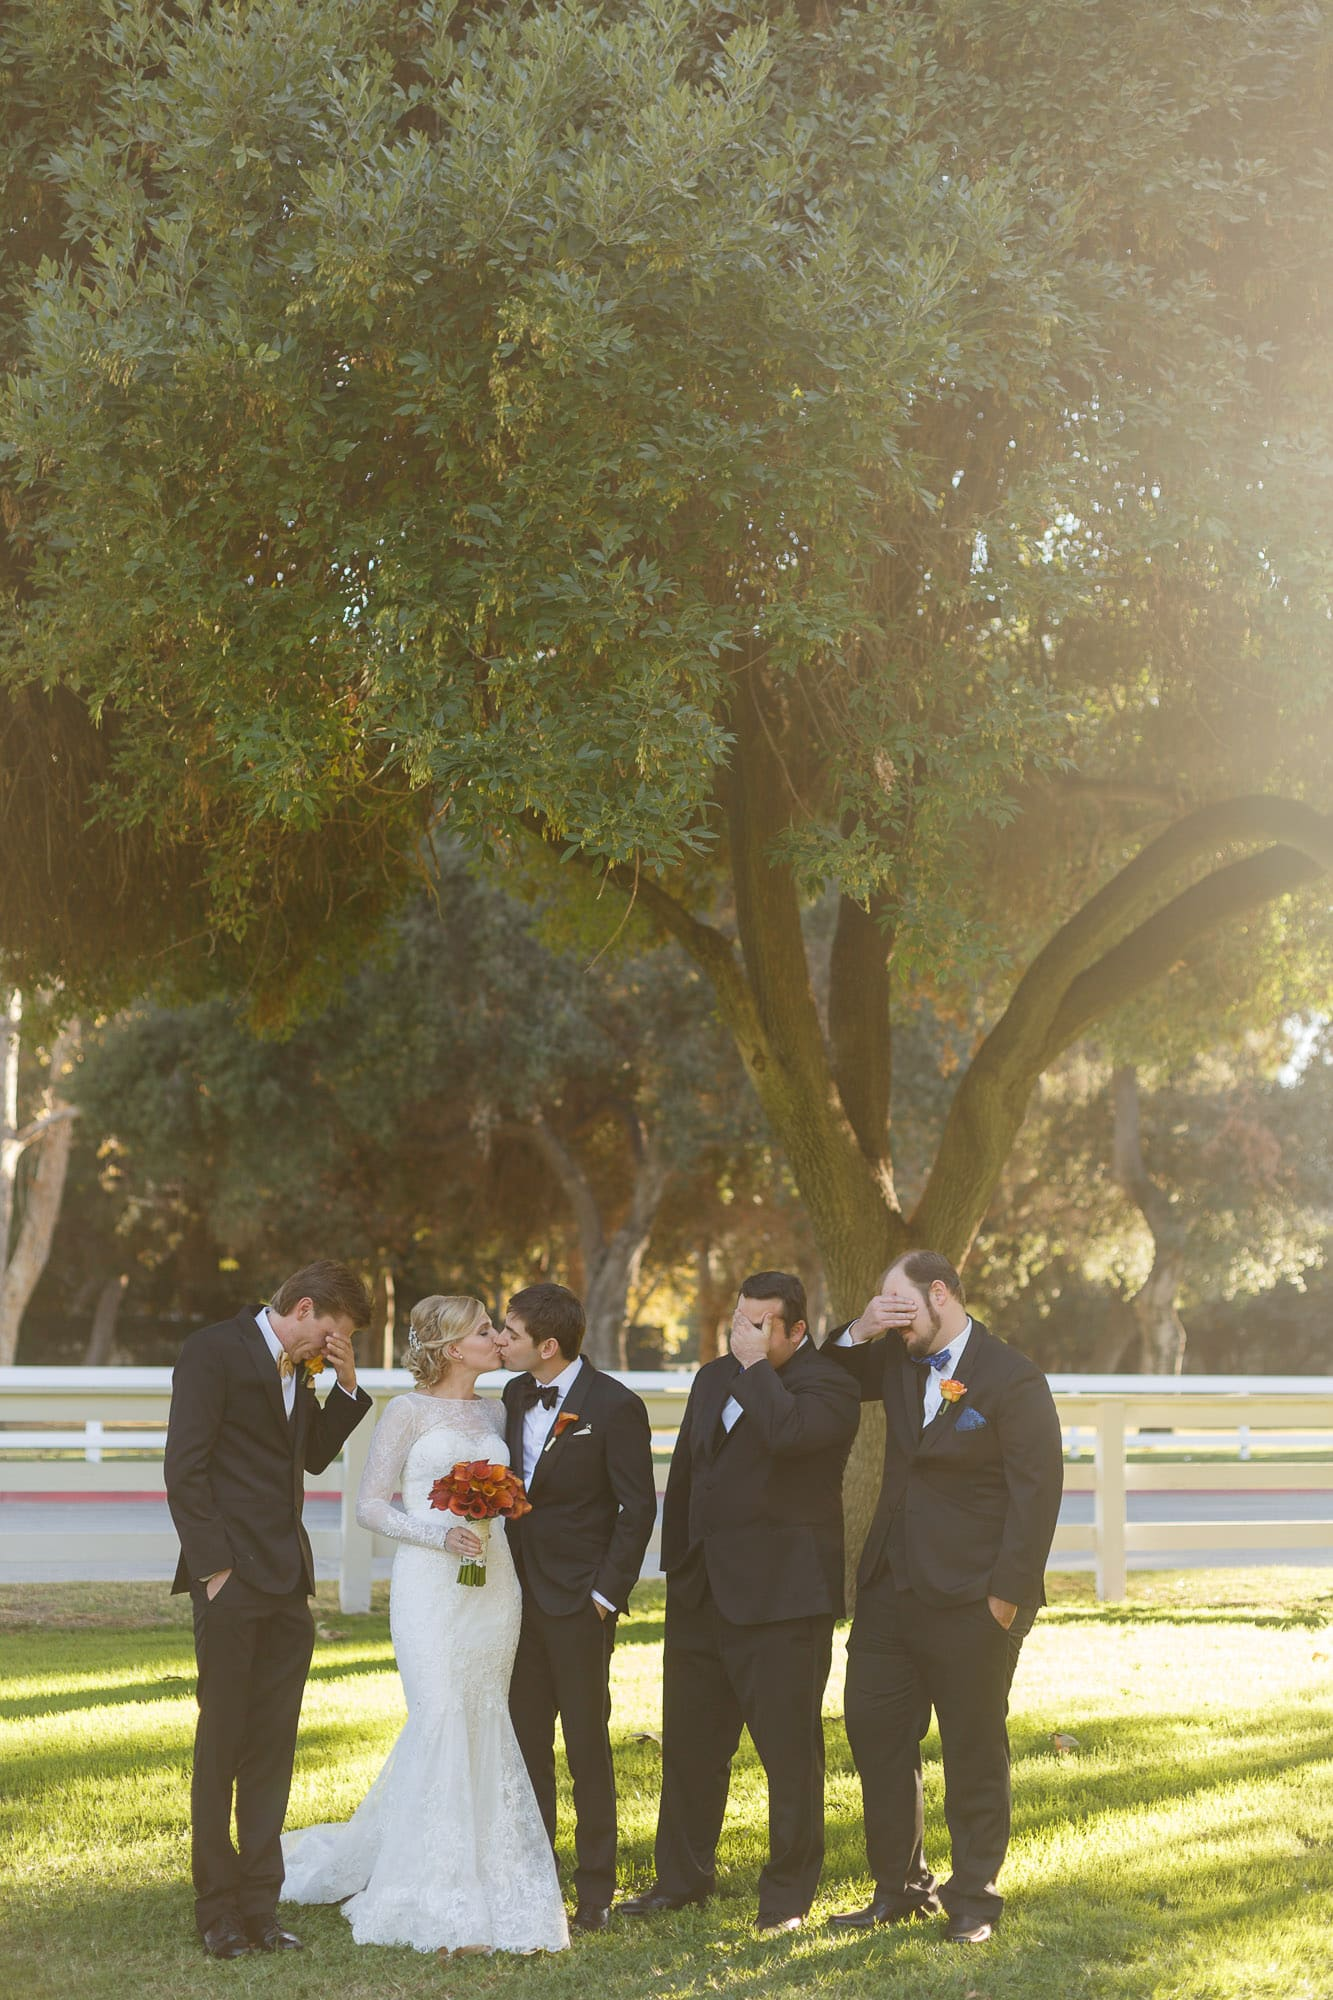 026_Alan_and_Heidi_Los_Angeles_Equestrian_Center_Wedding